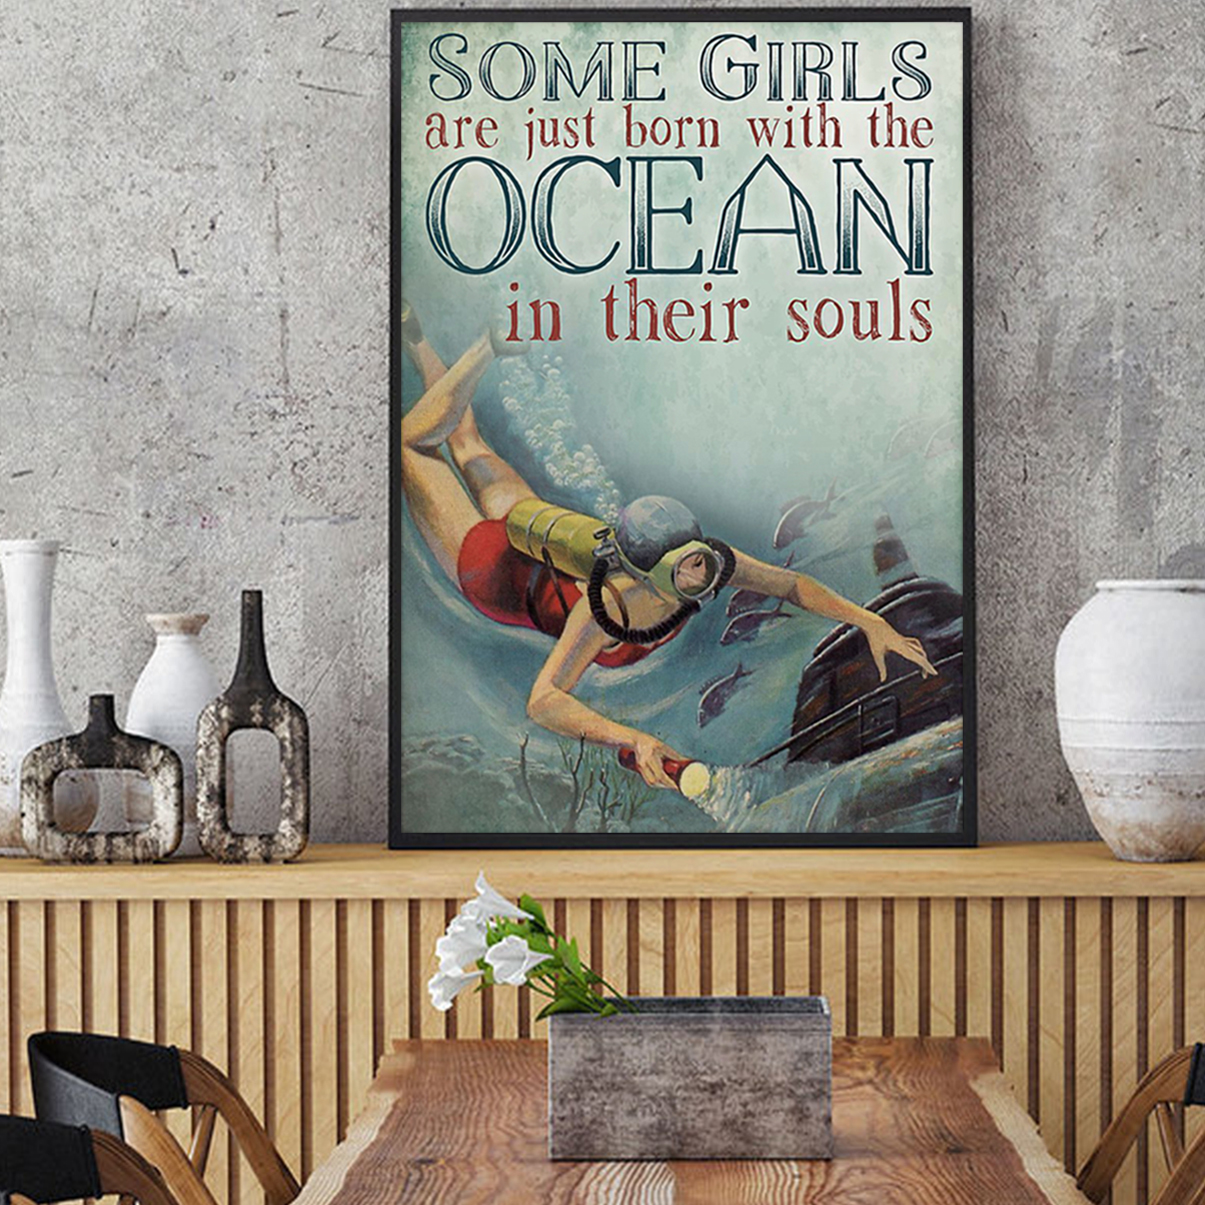 Scuba some girls are just born with the ocean in their souls poster A2